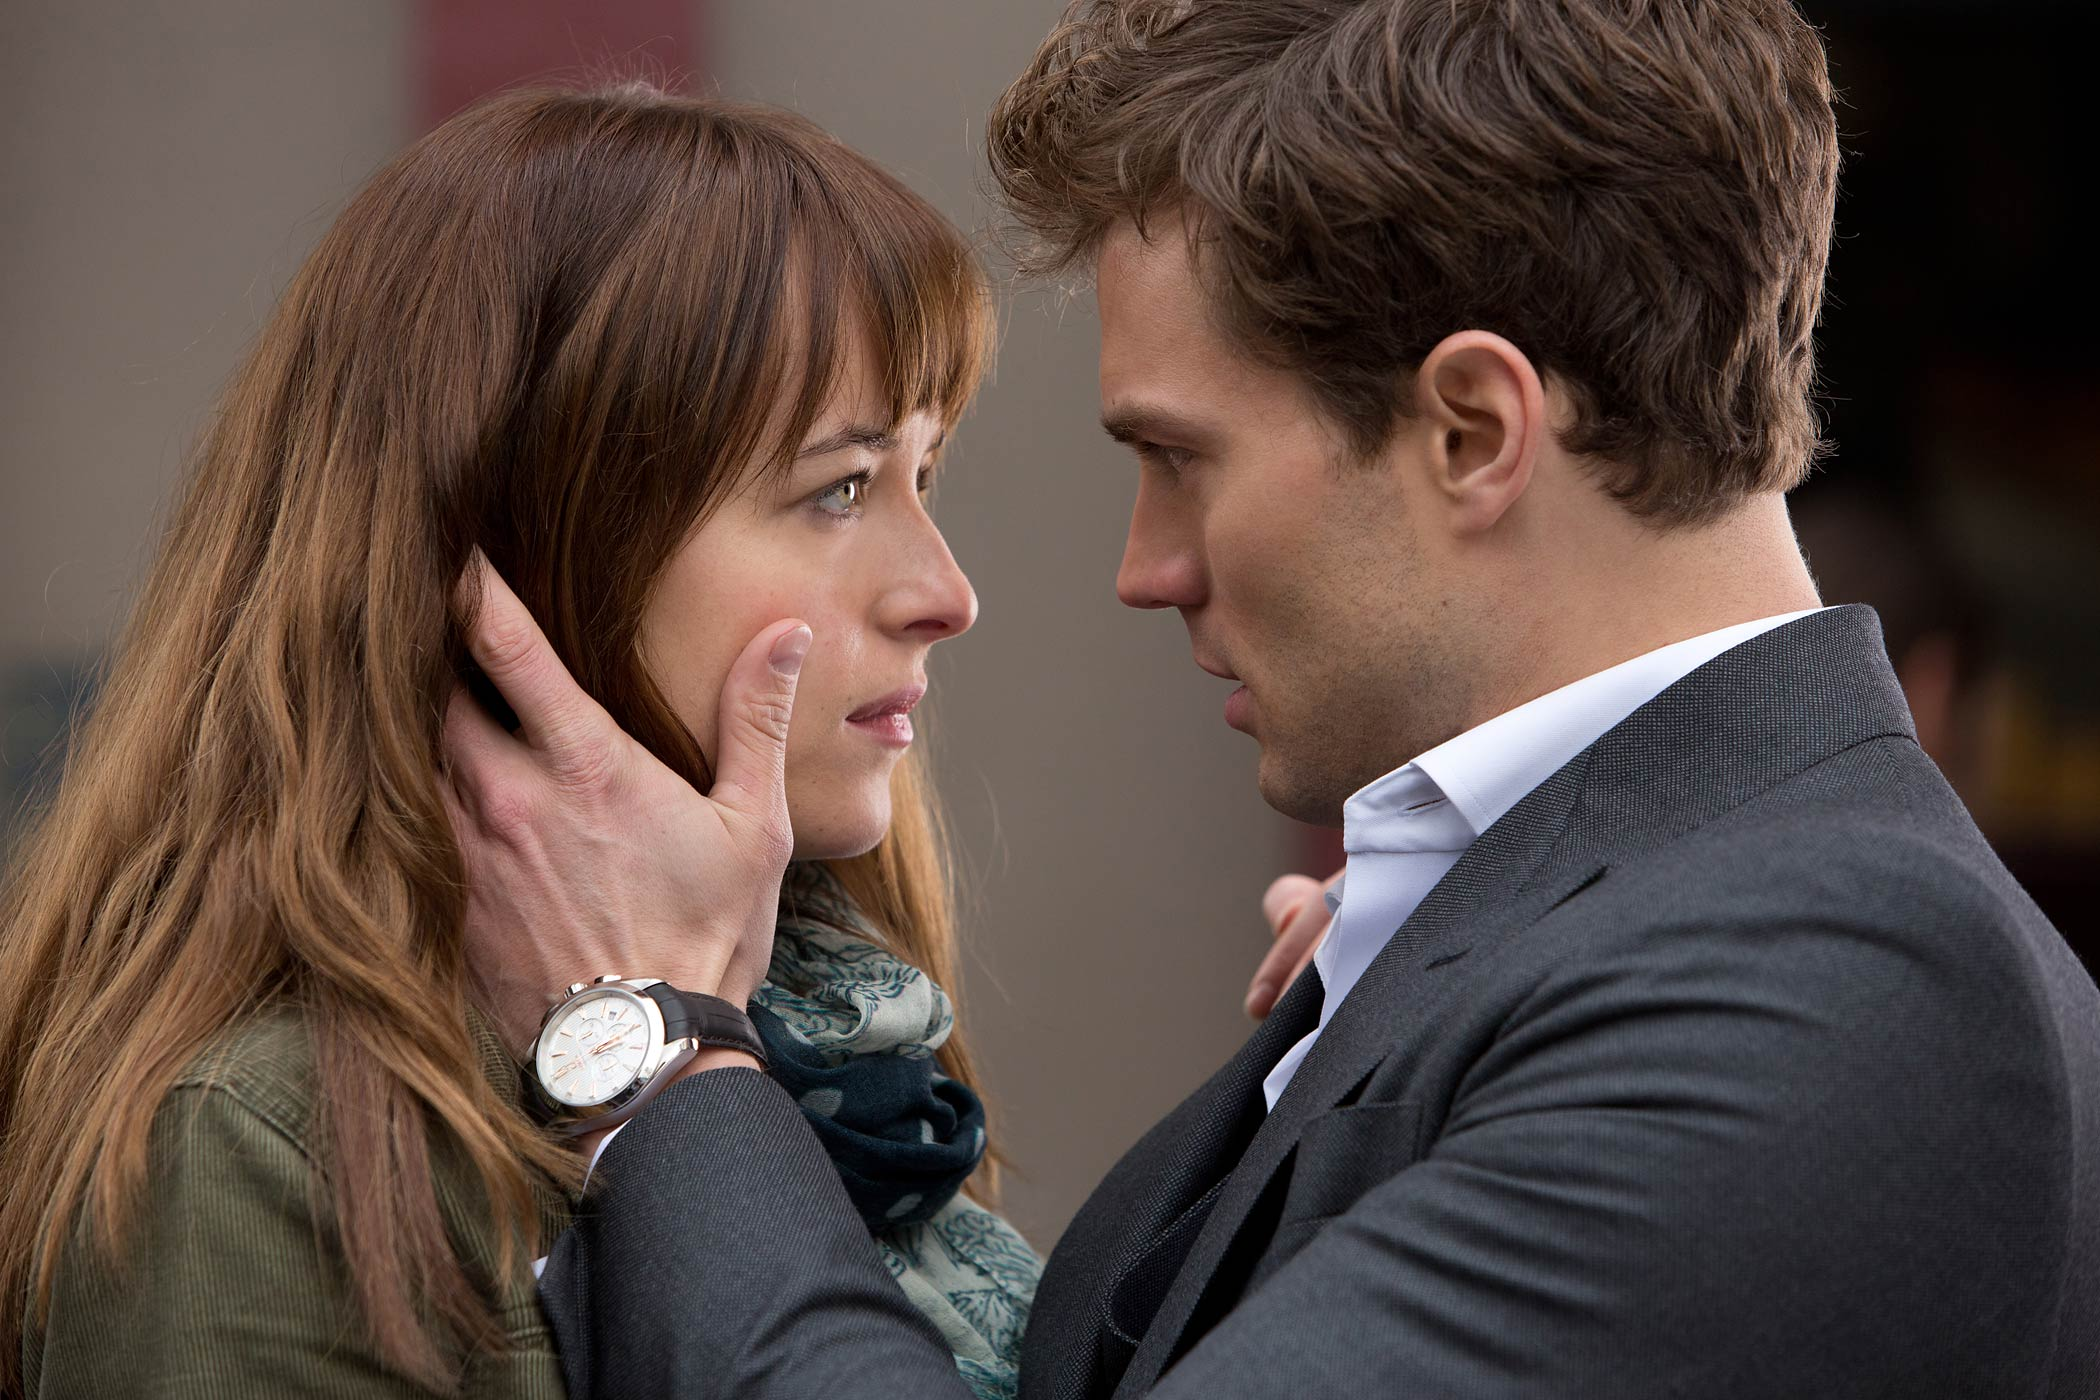 Dakota Johnson and James Dornan star in Fifty Shades of Grey